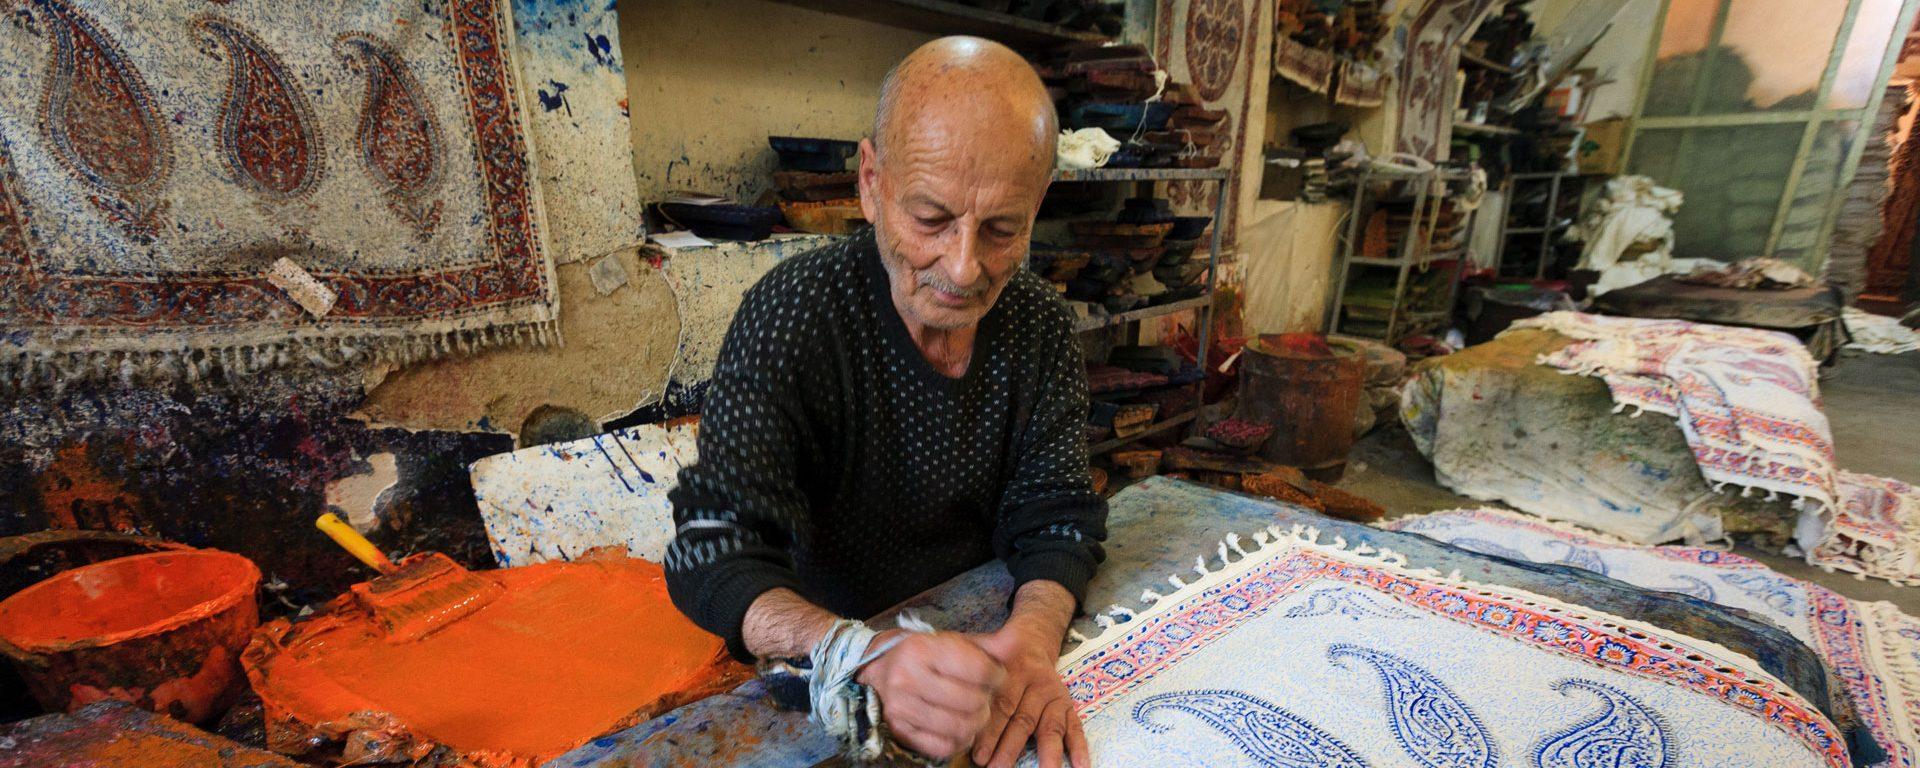 An artist crafts tapestries in his workshop, Iran